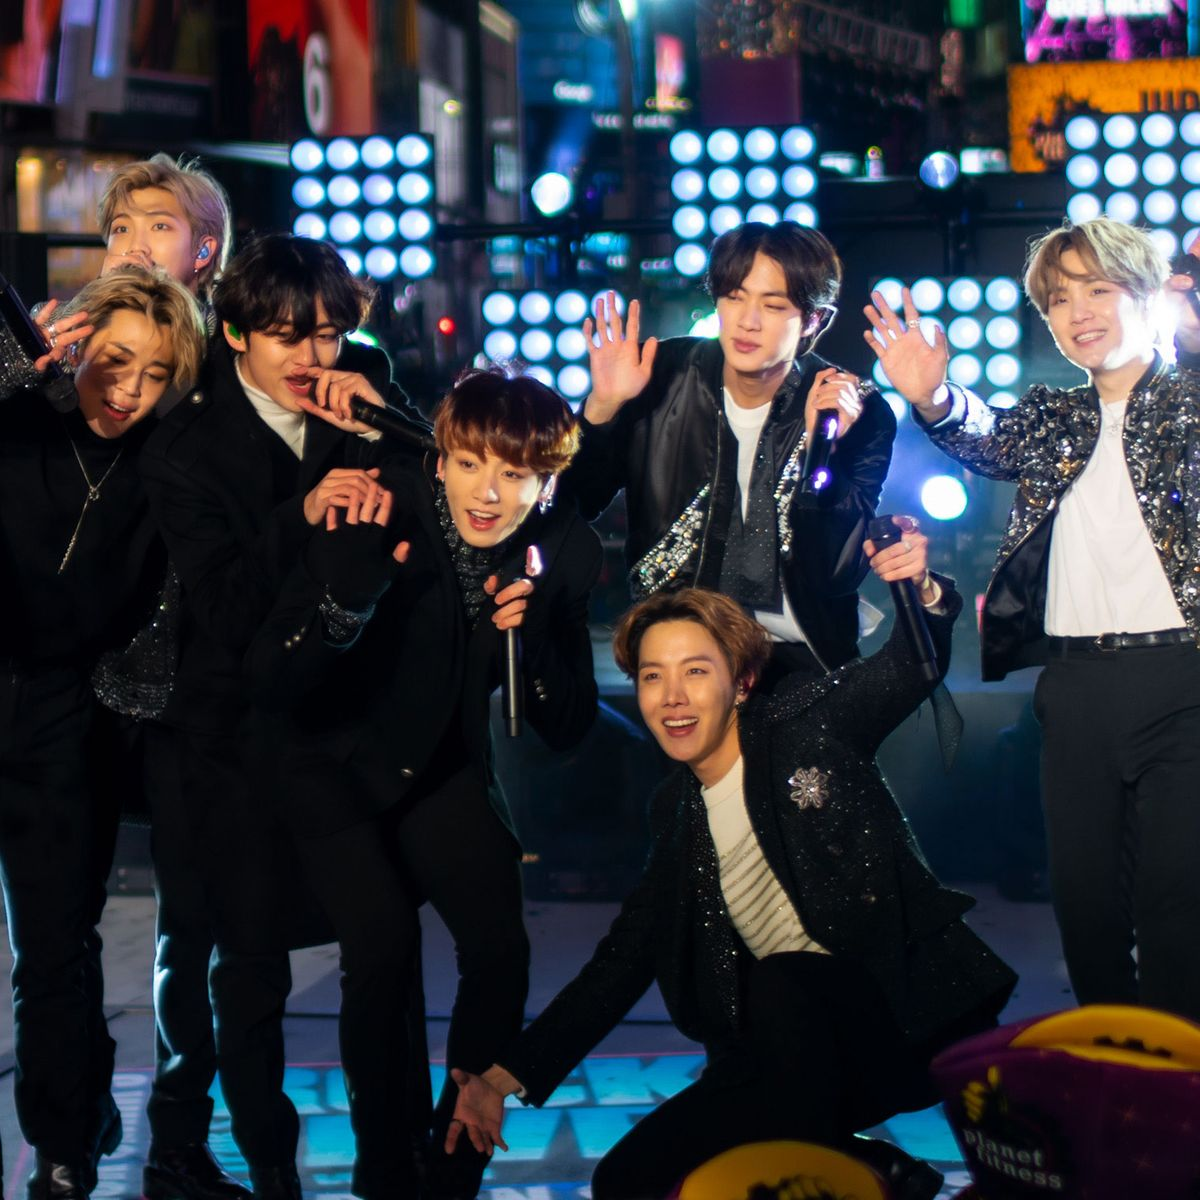 Bts Earns Their First Billboard No 1 Hit For Dynamite Discover images and videos about bts photoshoot from all over the world on we heart it. bts earns their first billboard no 1